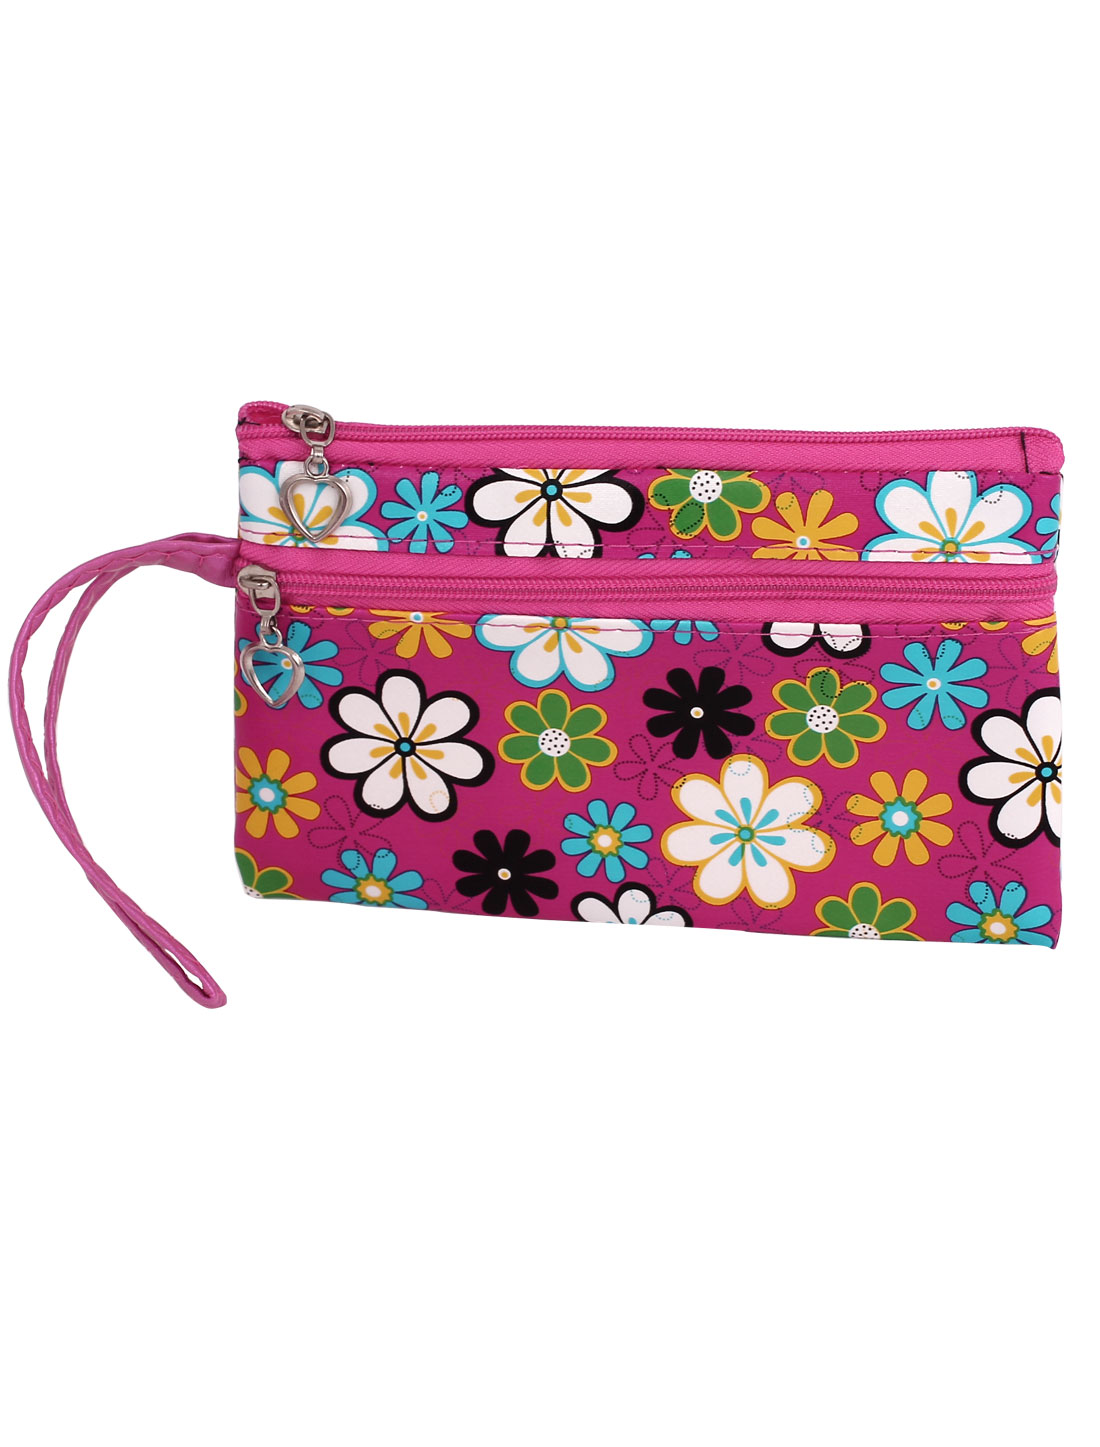 Lady Floral Print Cosmetic Coin Handbag Purse Pouch Wallet Bag